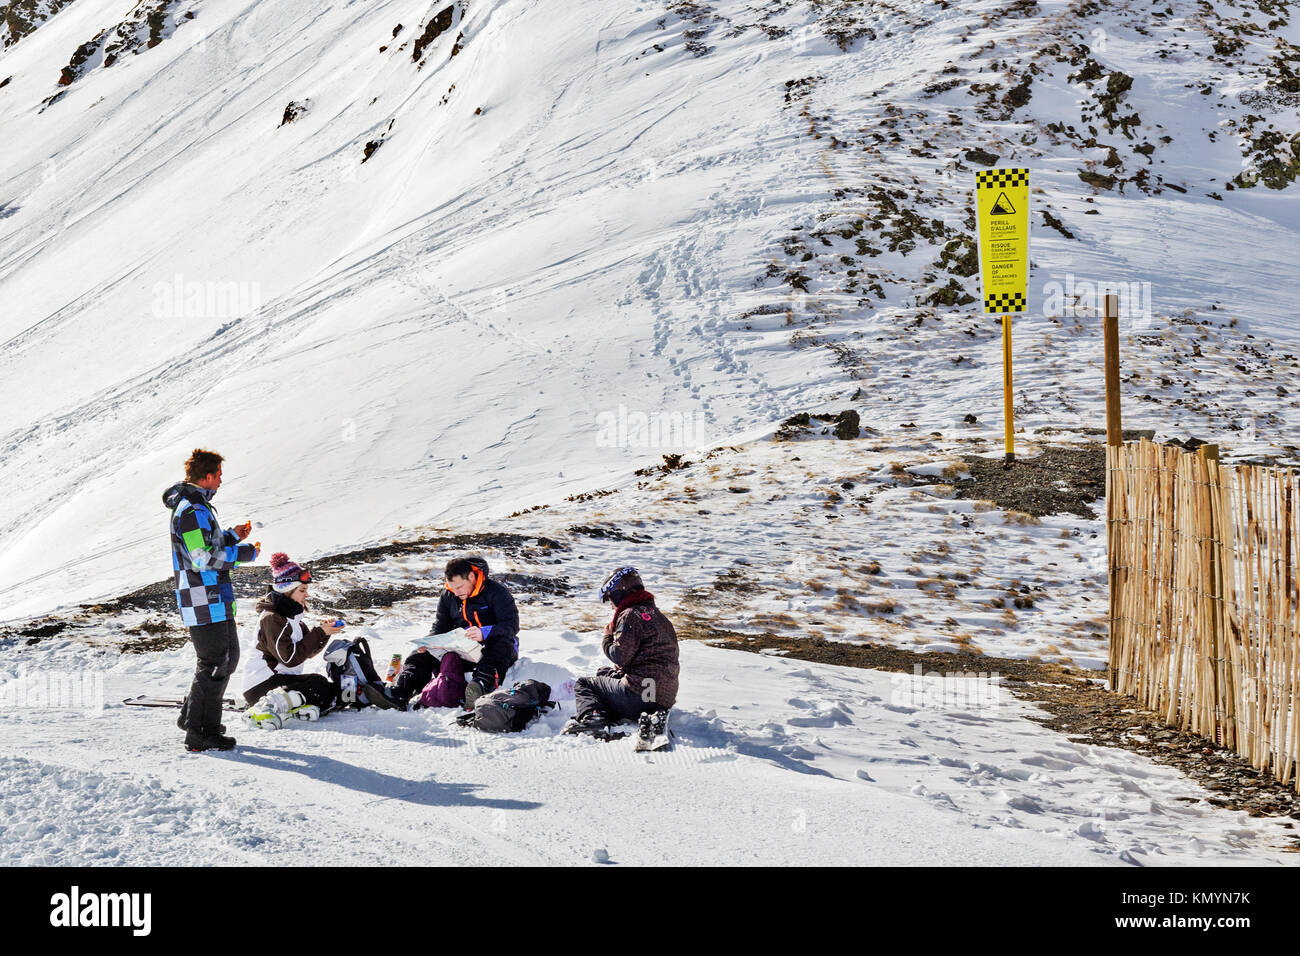 Pyrenees andorra february 11 2017 tourists at mountain top in pyrenees andorra february 11 2017 tourists at mountain top in ski resort skiers sit have a rest and watch the card pyrenees andorra winter s sciox Choice Image